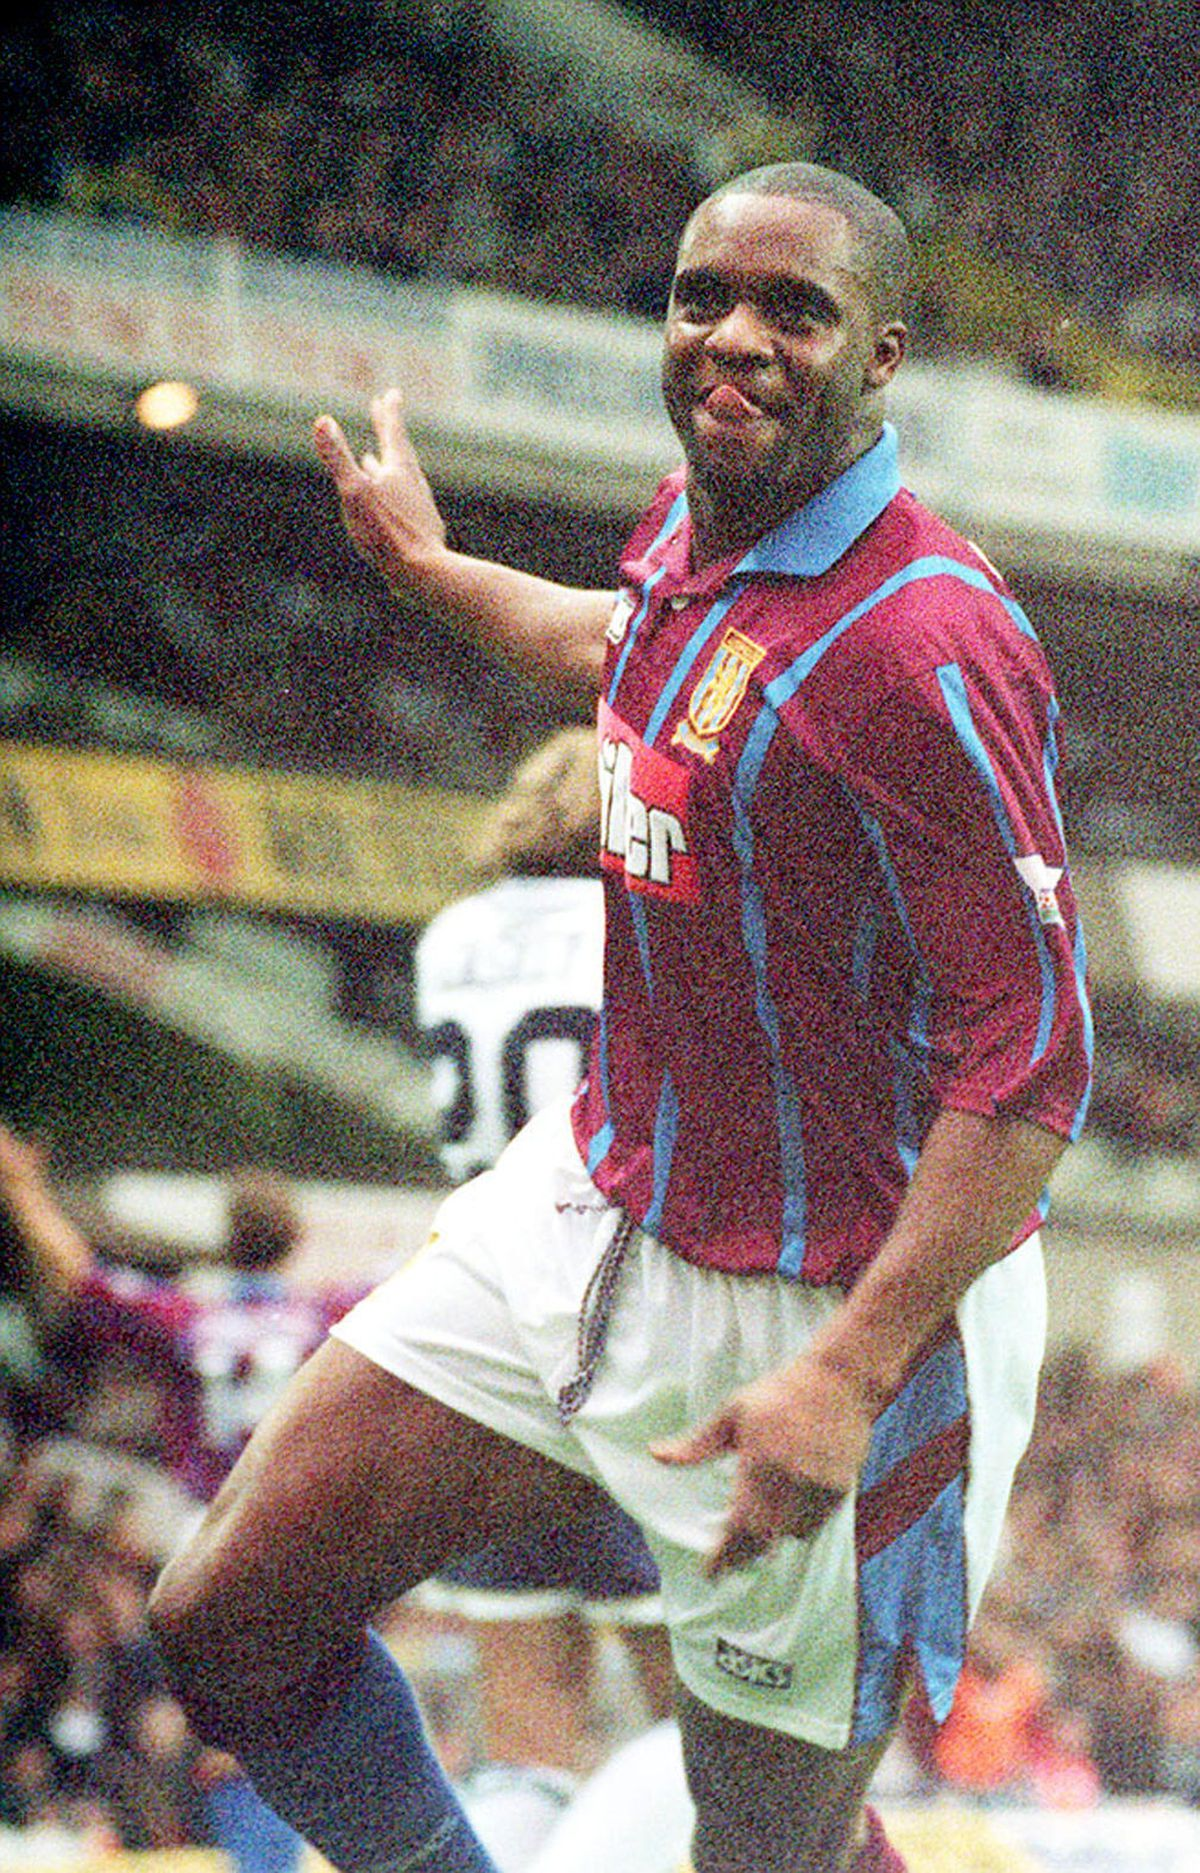 Dalian Atkinson is best known for his time at Aston Villa. Photo: Sean Dempsey/PA Wire.